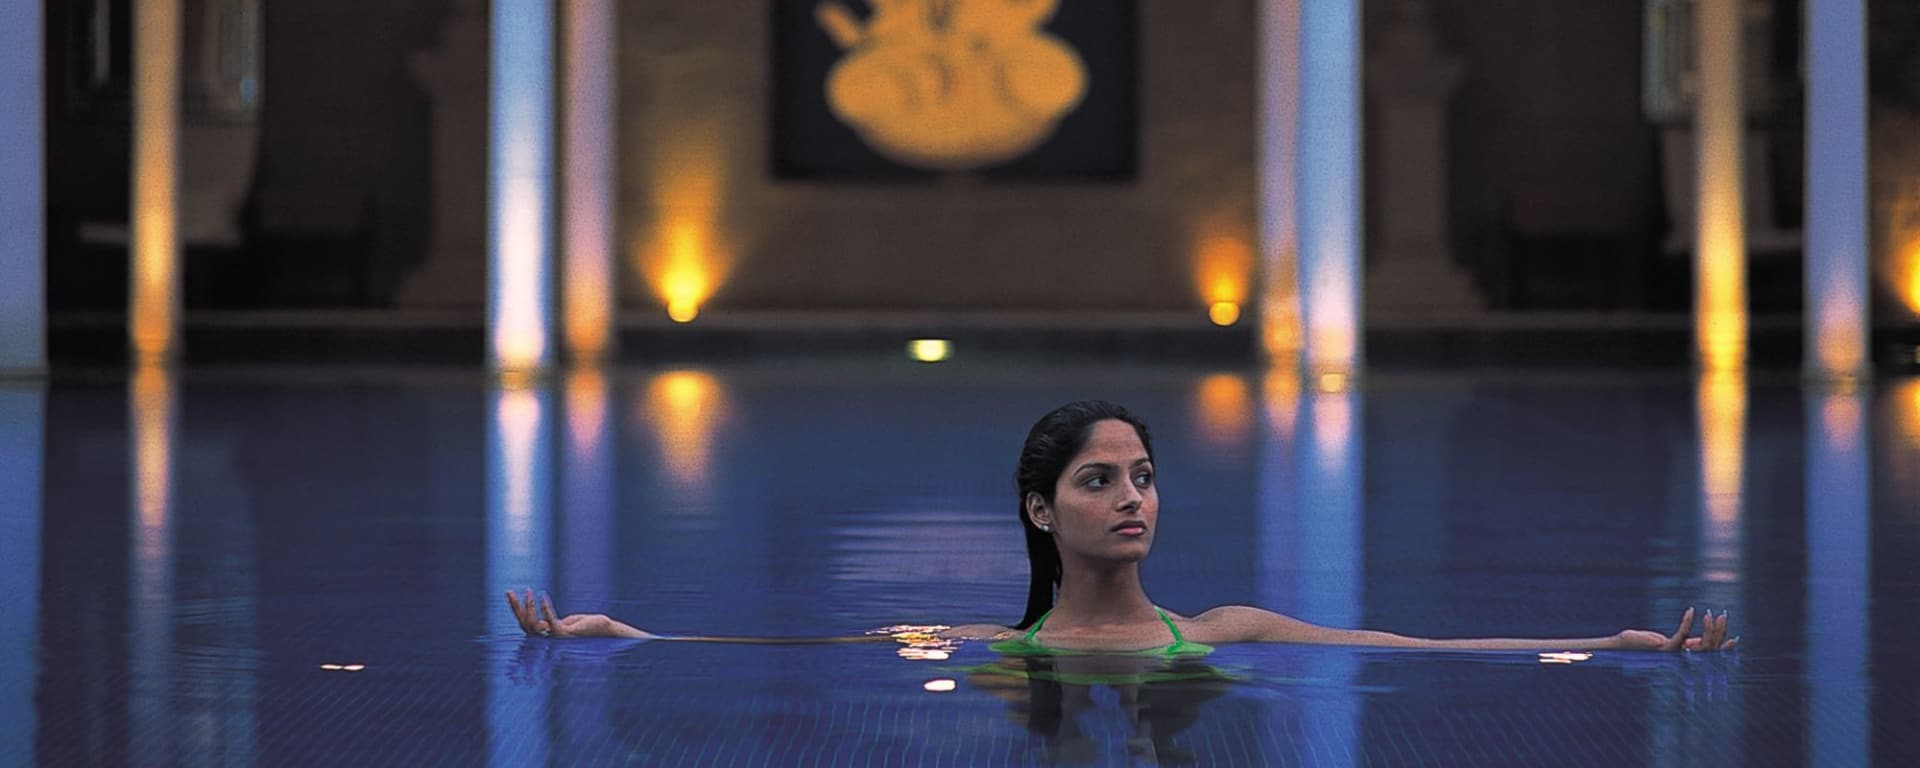 The Oberoi Amarvilas in Agra: Pool